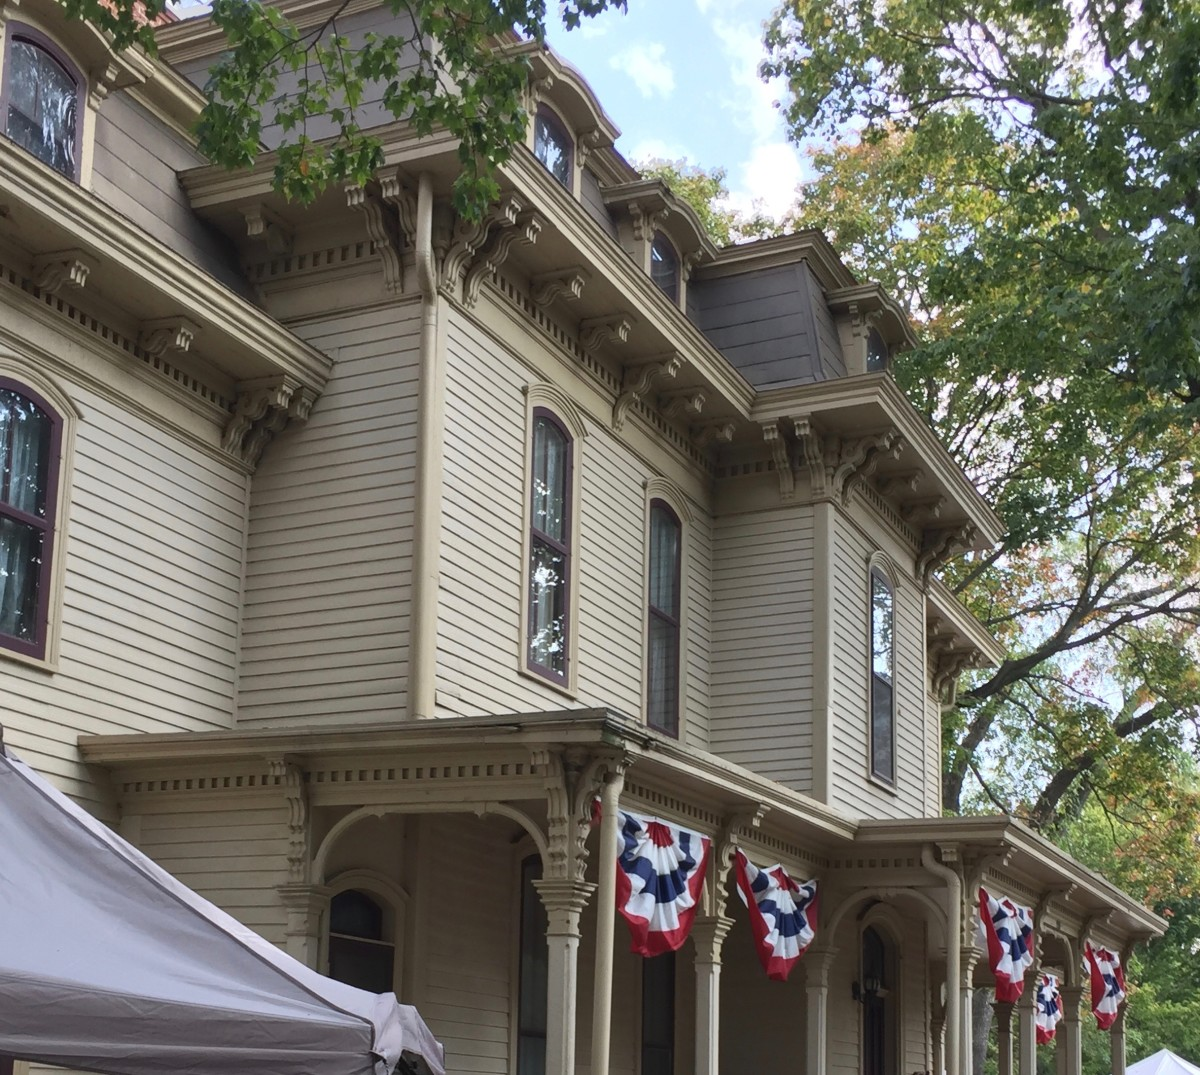 Clinton, Illinois:  History of the C.H. Moore Homestead and Apple 'n Pork Festival